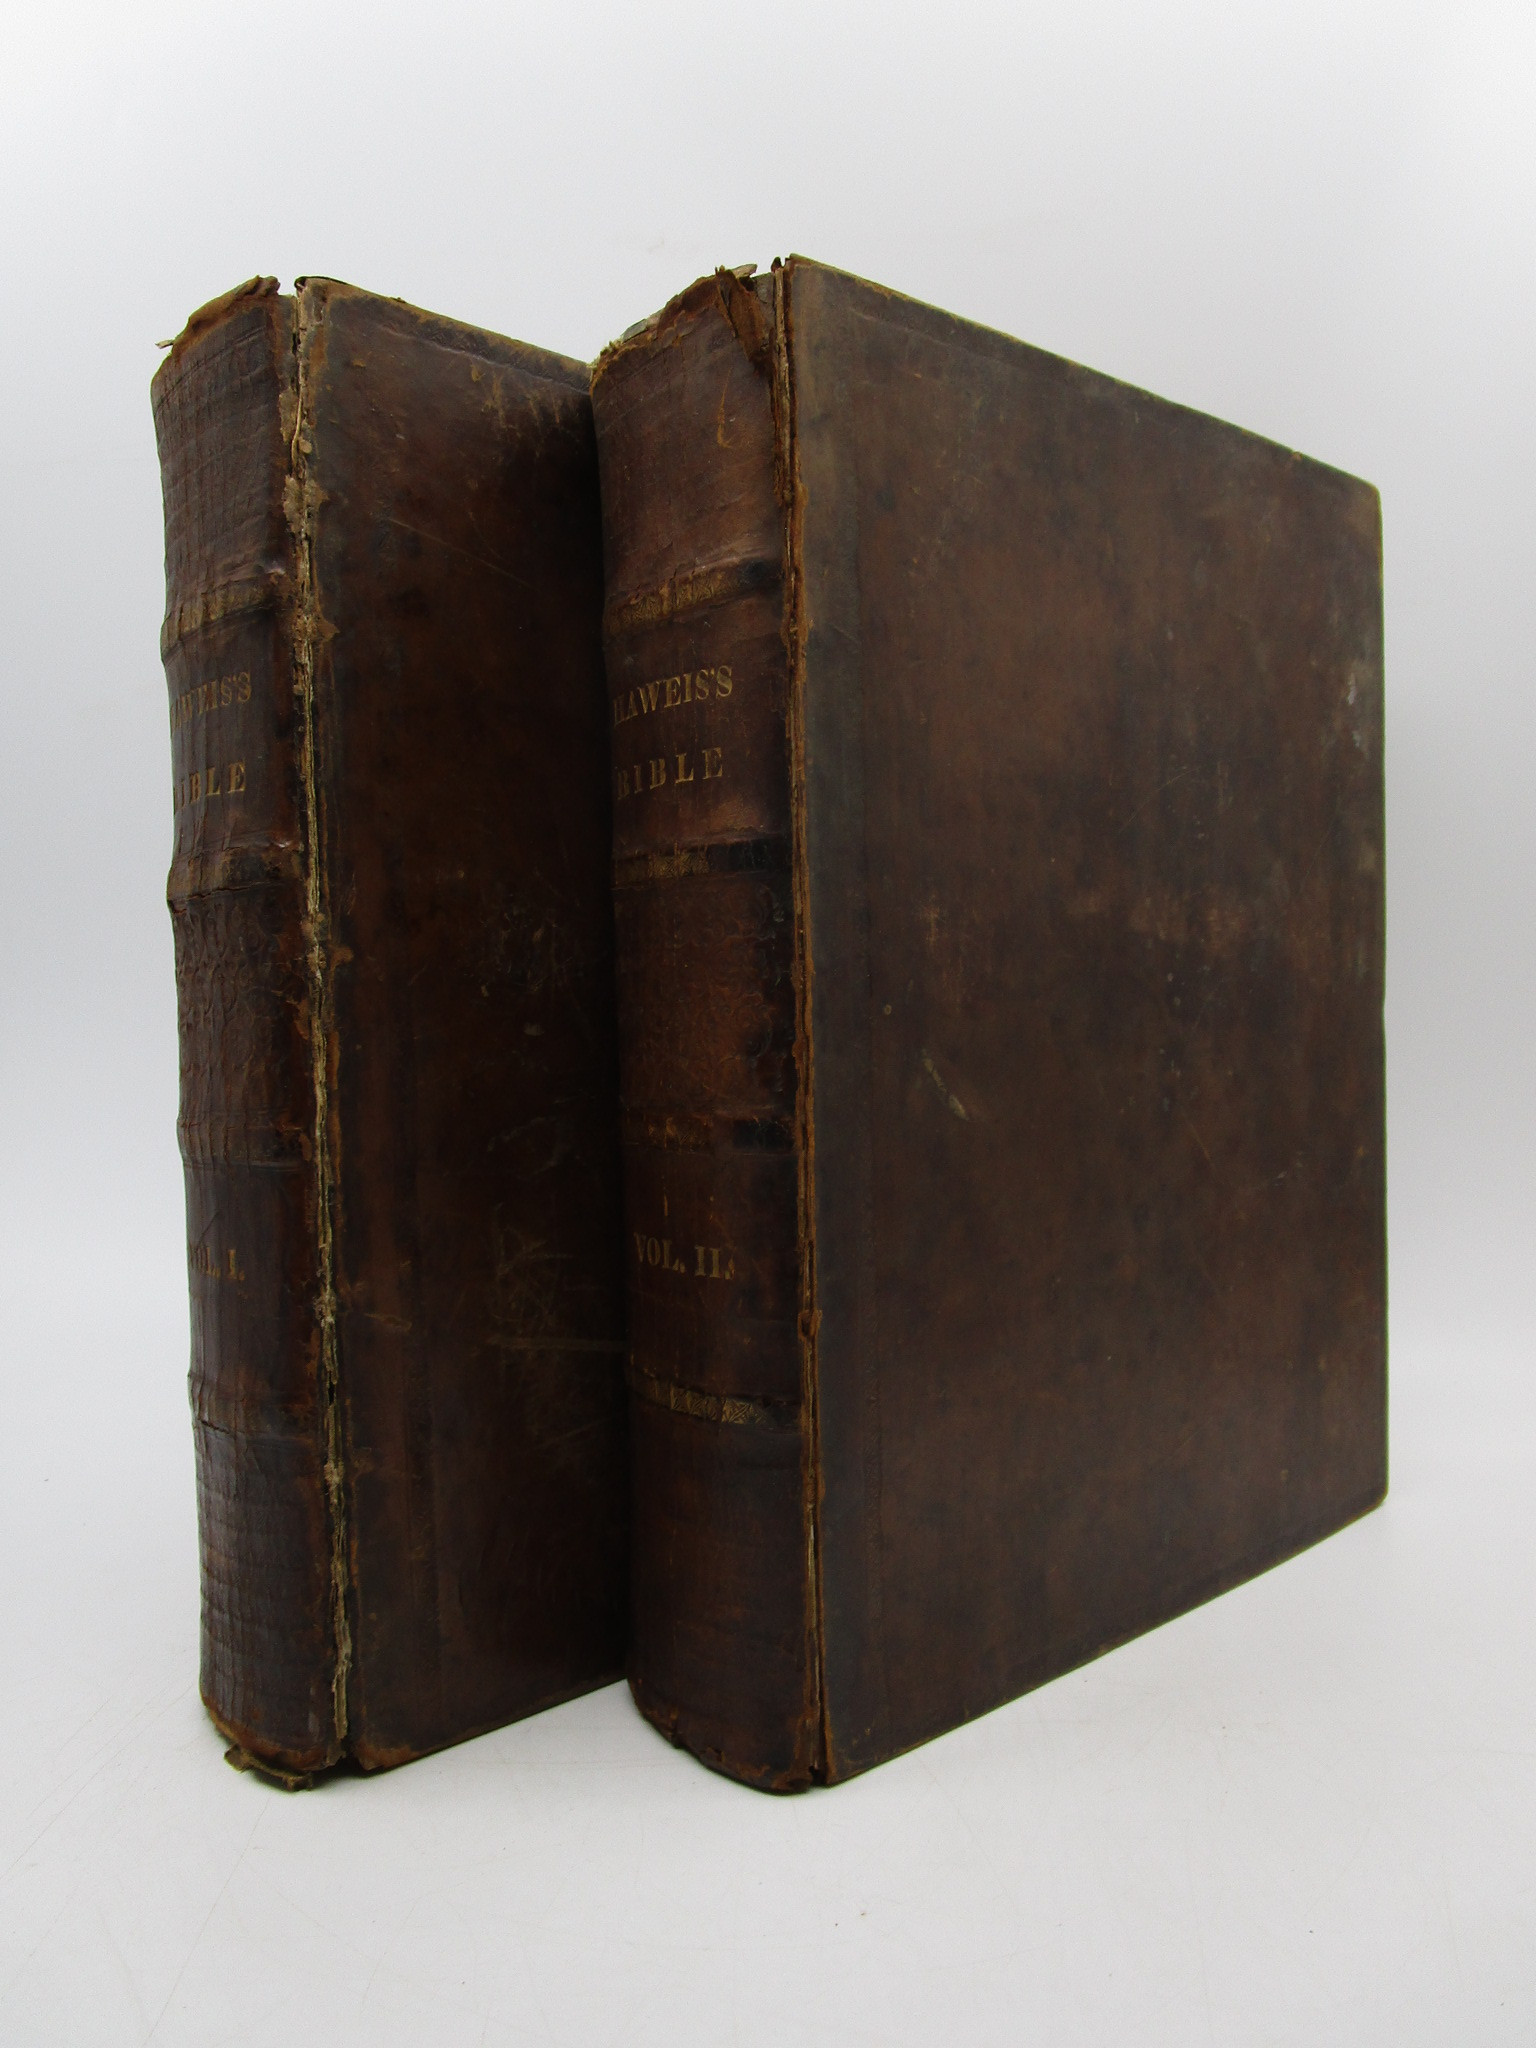 Image for The Evangelical Expositor; Or, A Commentary on the Holy Bible; Wherein the Sacred Text of the Old and New Testaments Is Inserted At Large, the Sense Explained, and the More Difficult Passages Elucidated; with Practical Observations for the Use of Families and Private Christians (Volume 1 and 2 Only)